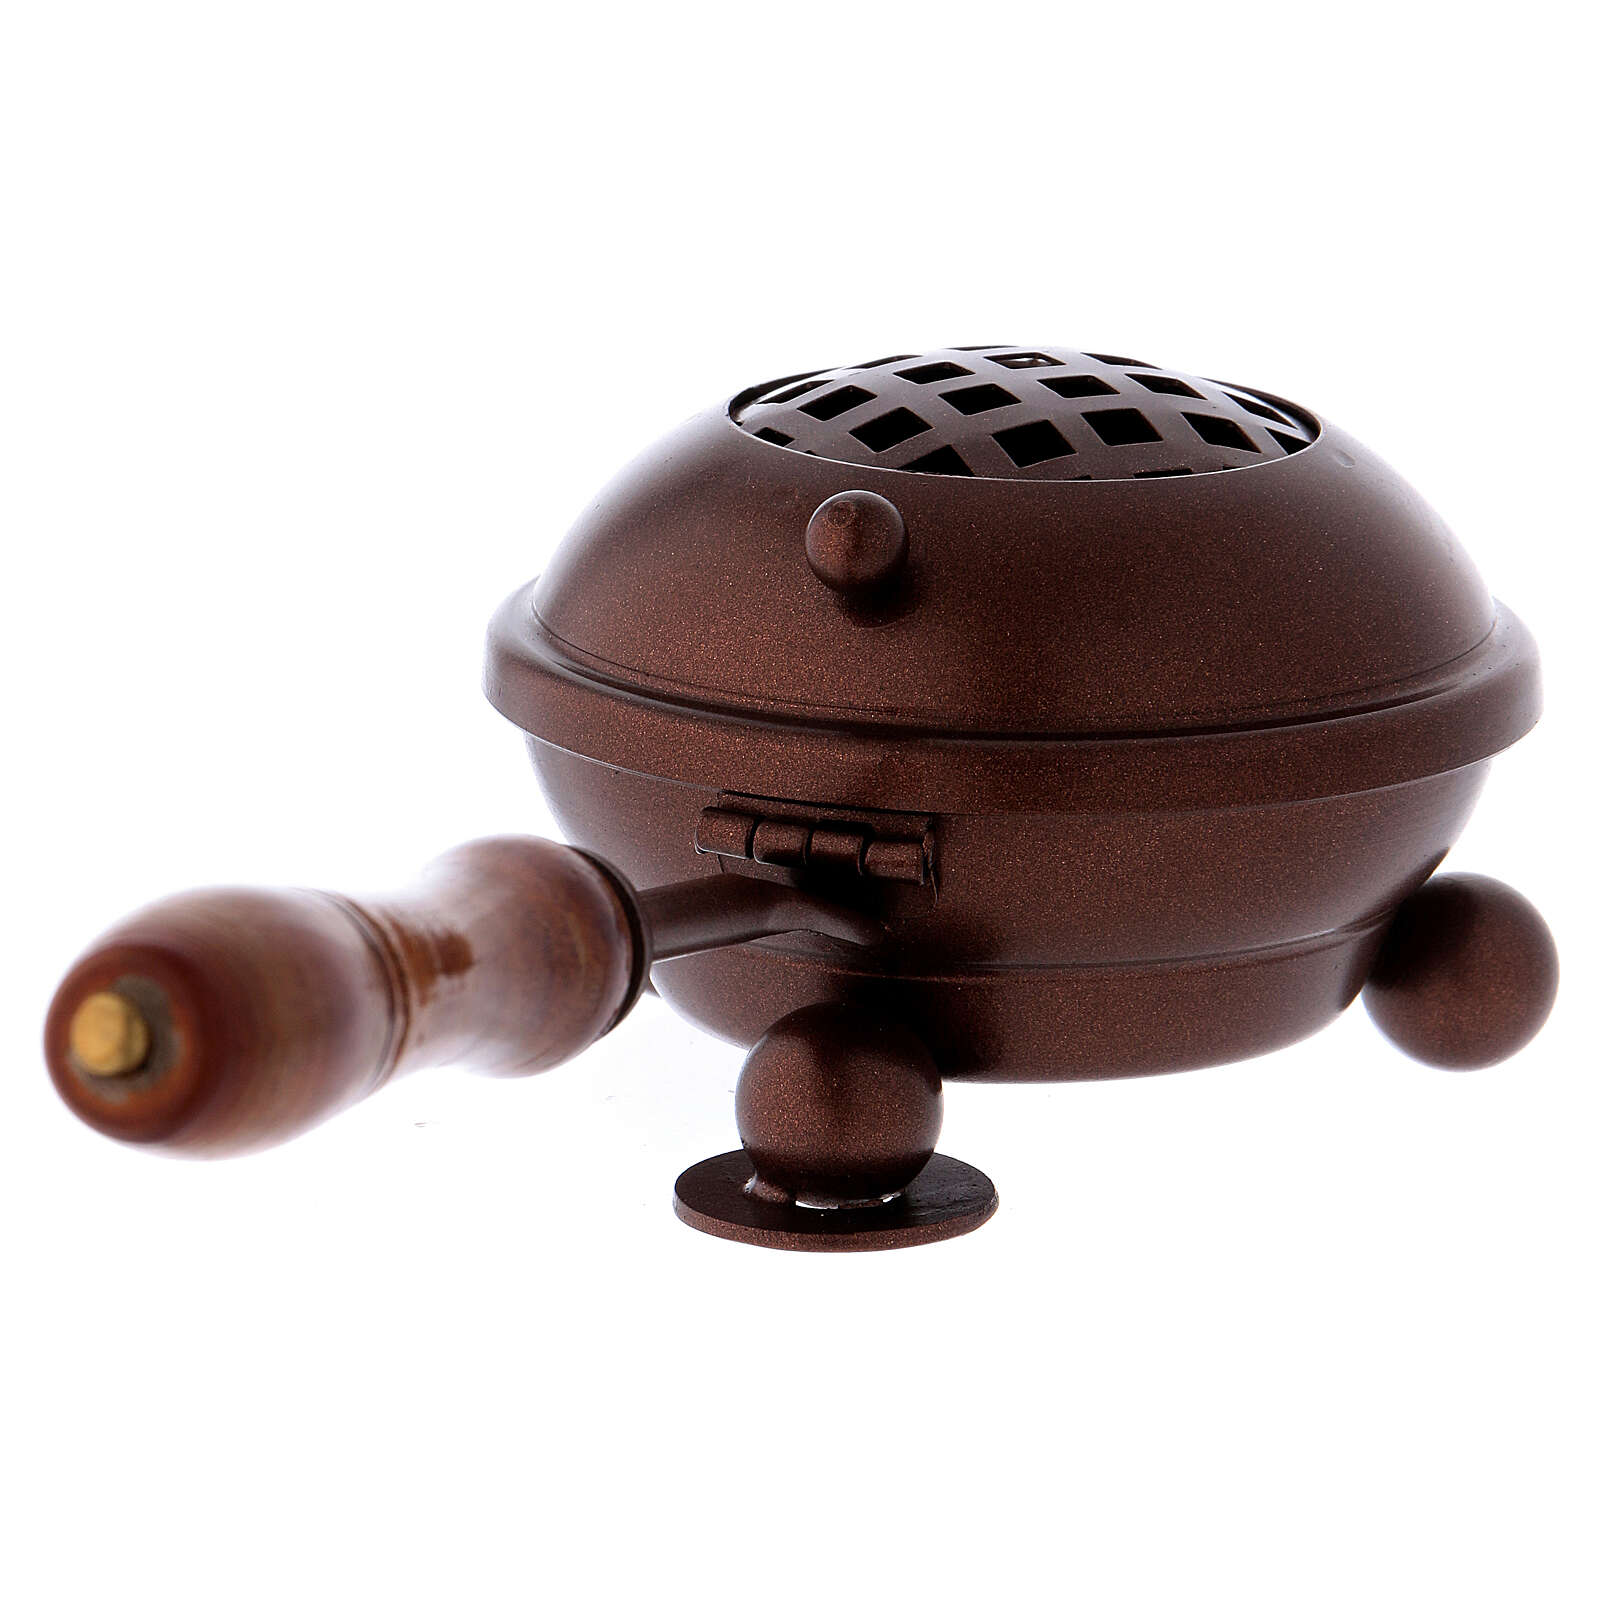 Iron incense burner with handle and copper finish 3